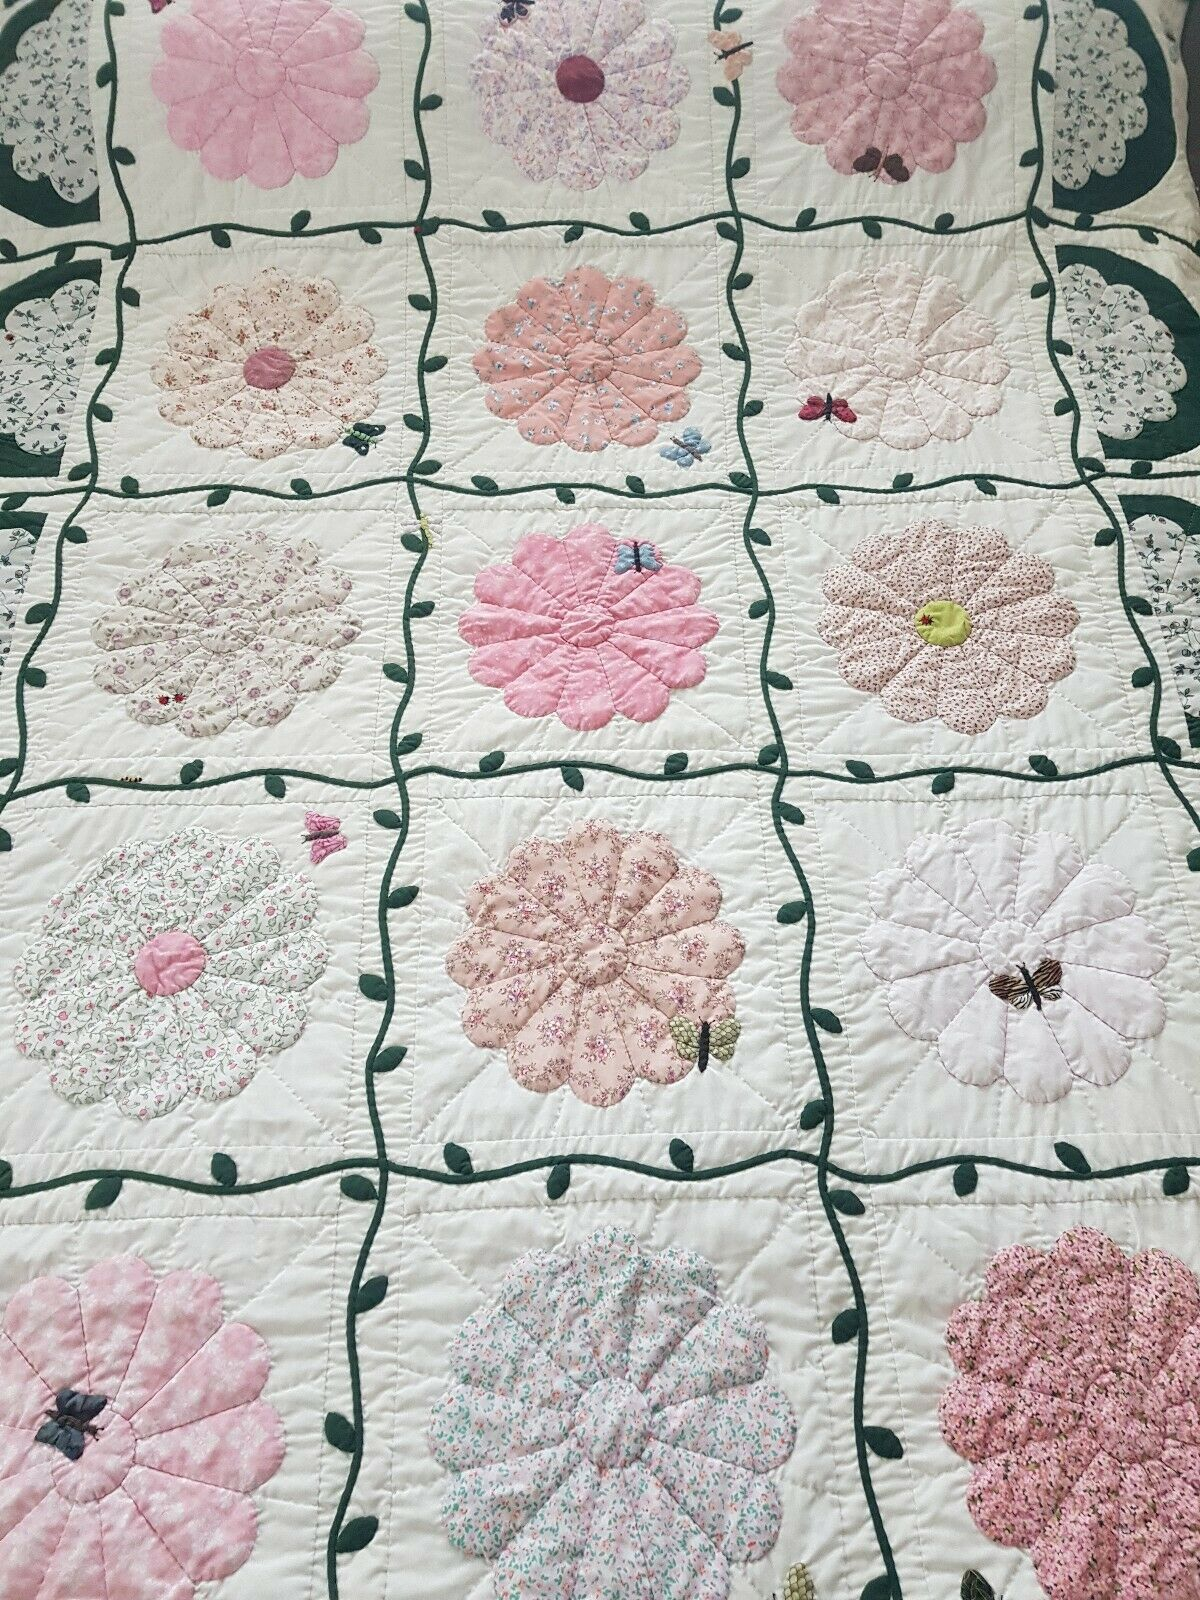 Vintage style embroiderot flower handmade patchwork cotton throw bedspread